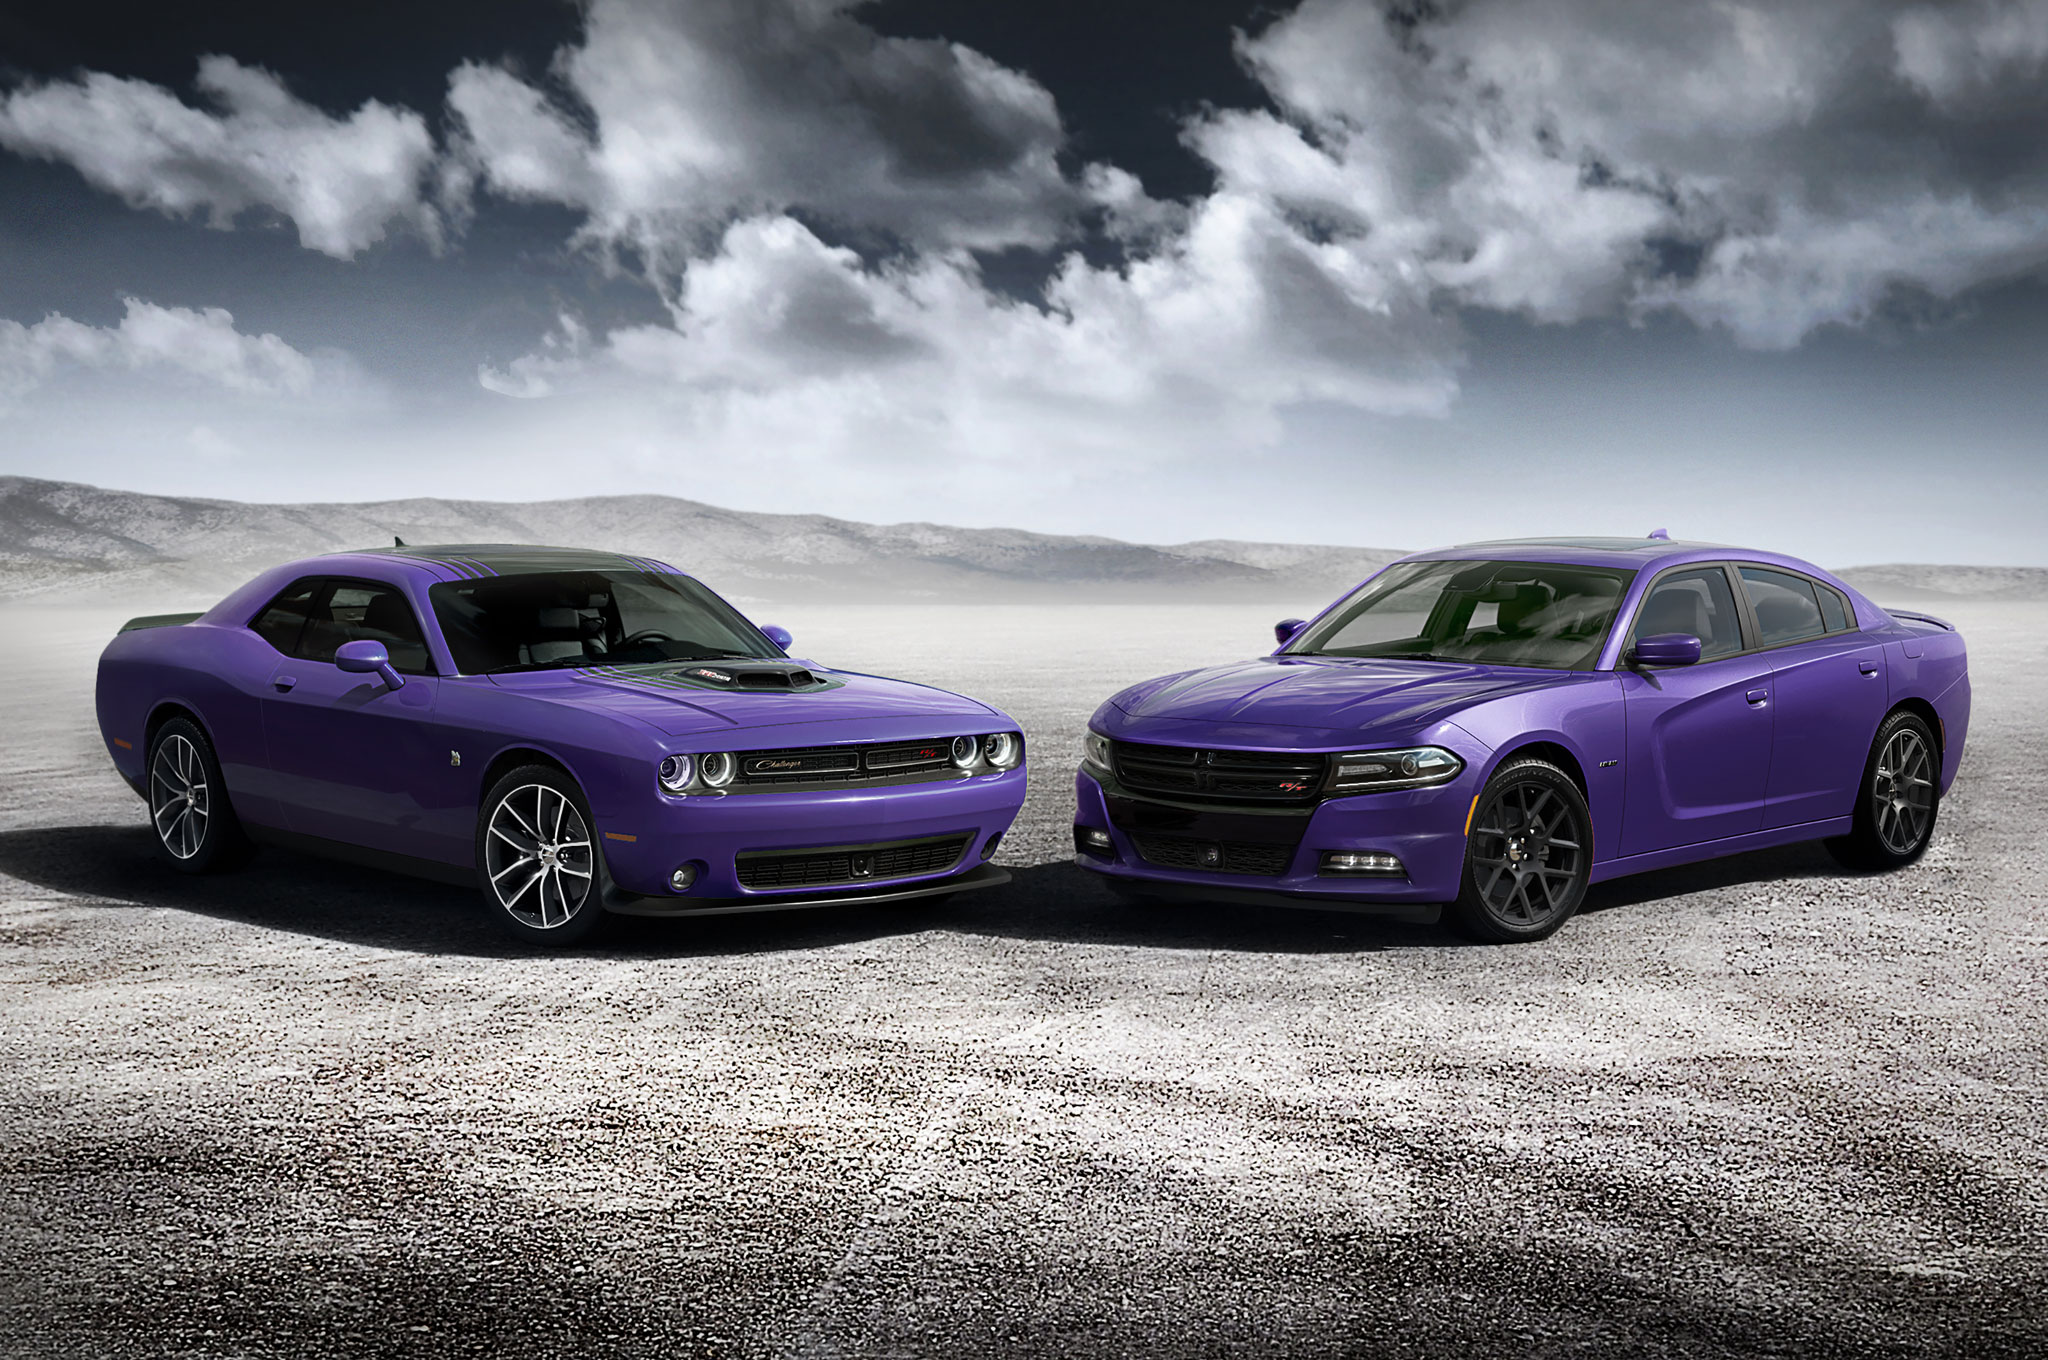 2016 Dodge Charger Challenger Add Plum Crazy Paint Option HD Wallpapers Download free images and photos [musssic.tk]